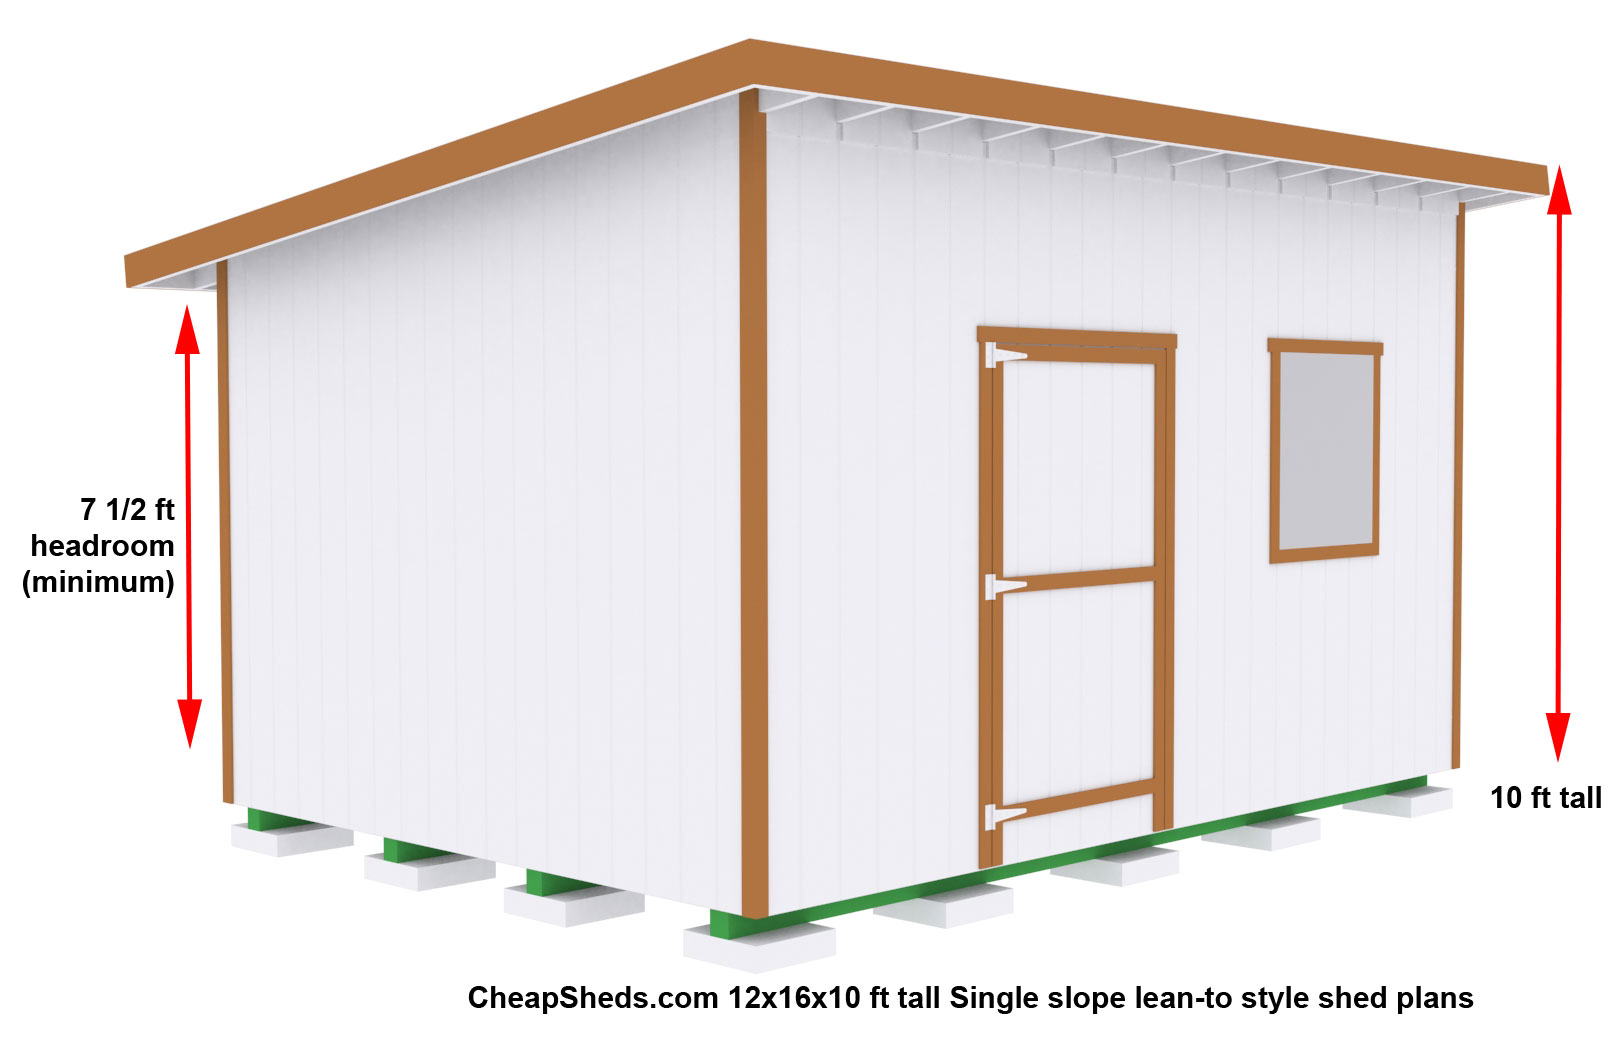 Verana buy 10 x 12 shed for Lean to plans free